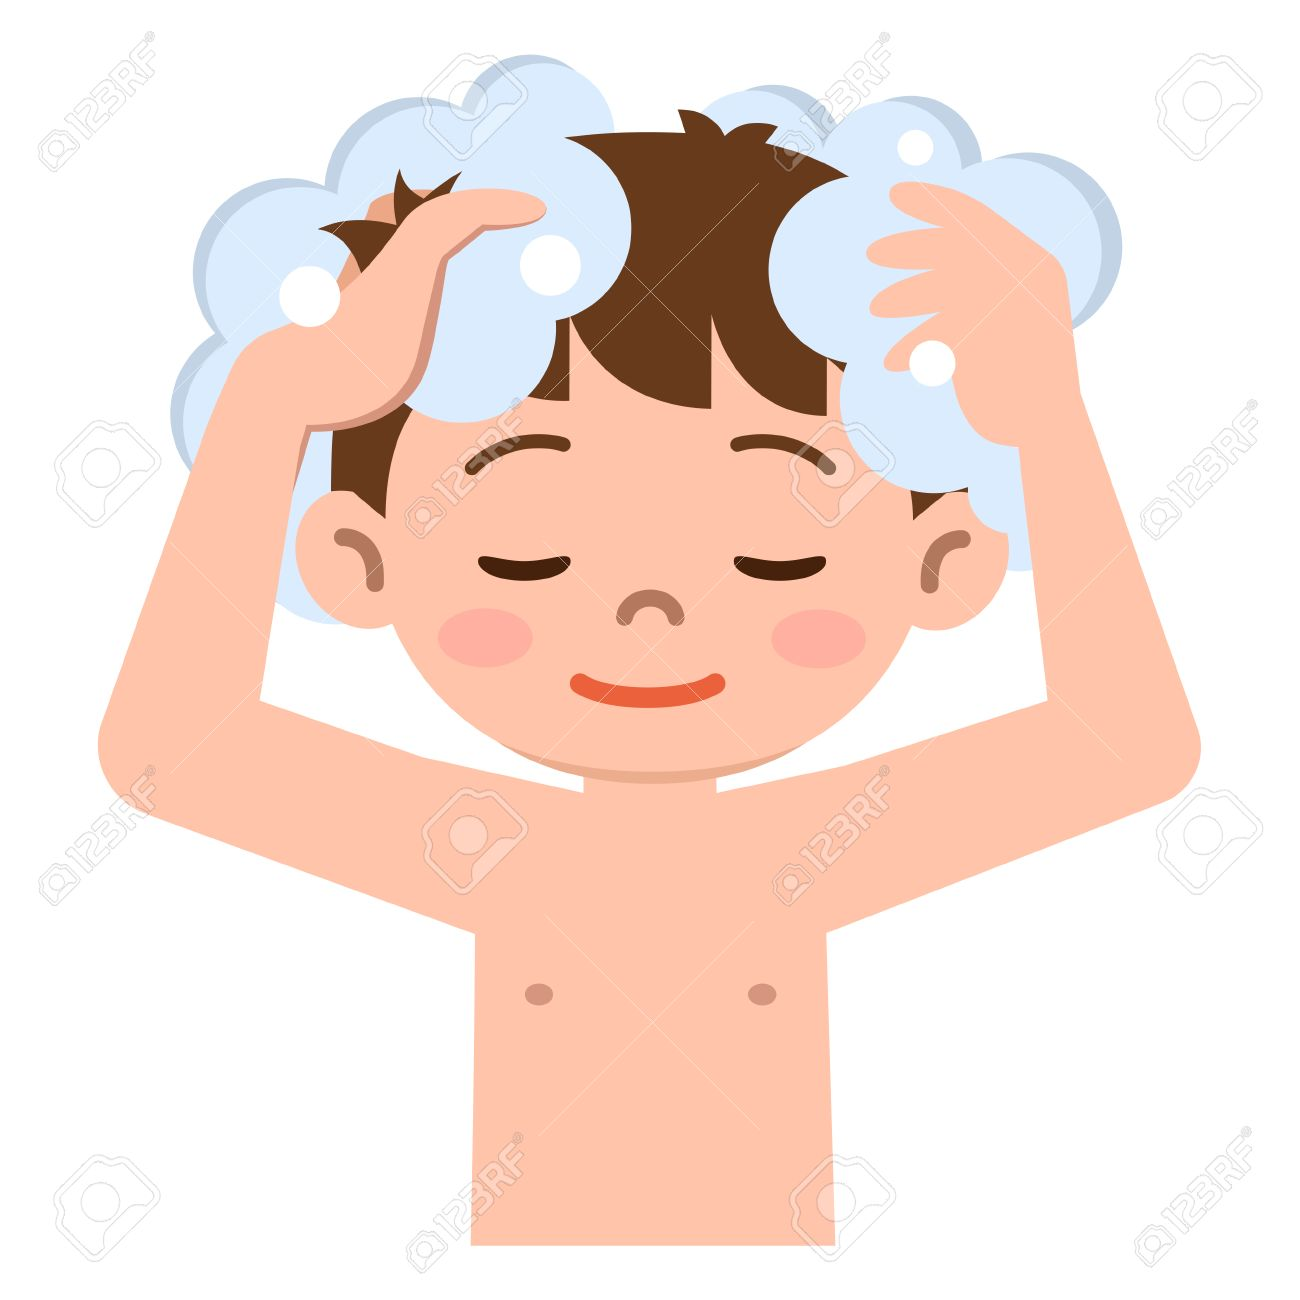 Boy to wash the hair with shampoo.